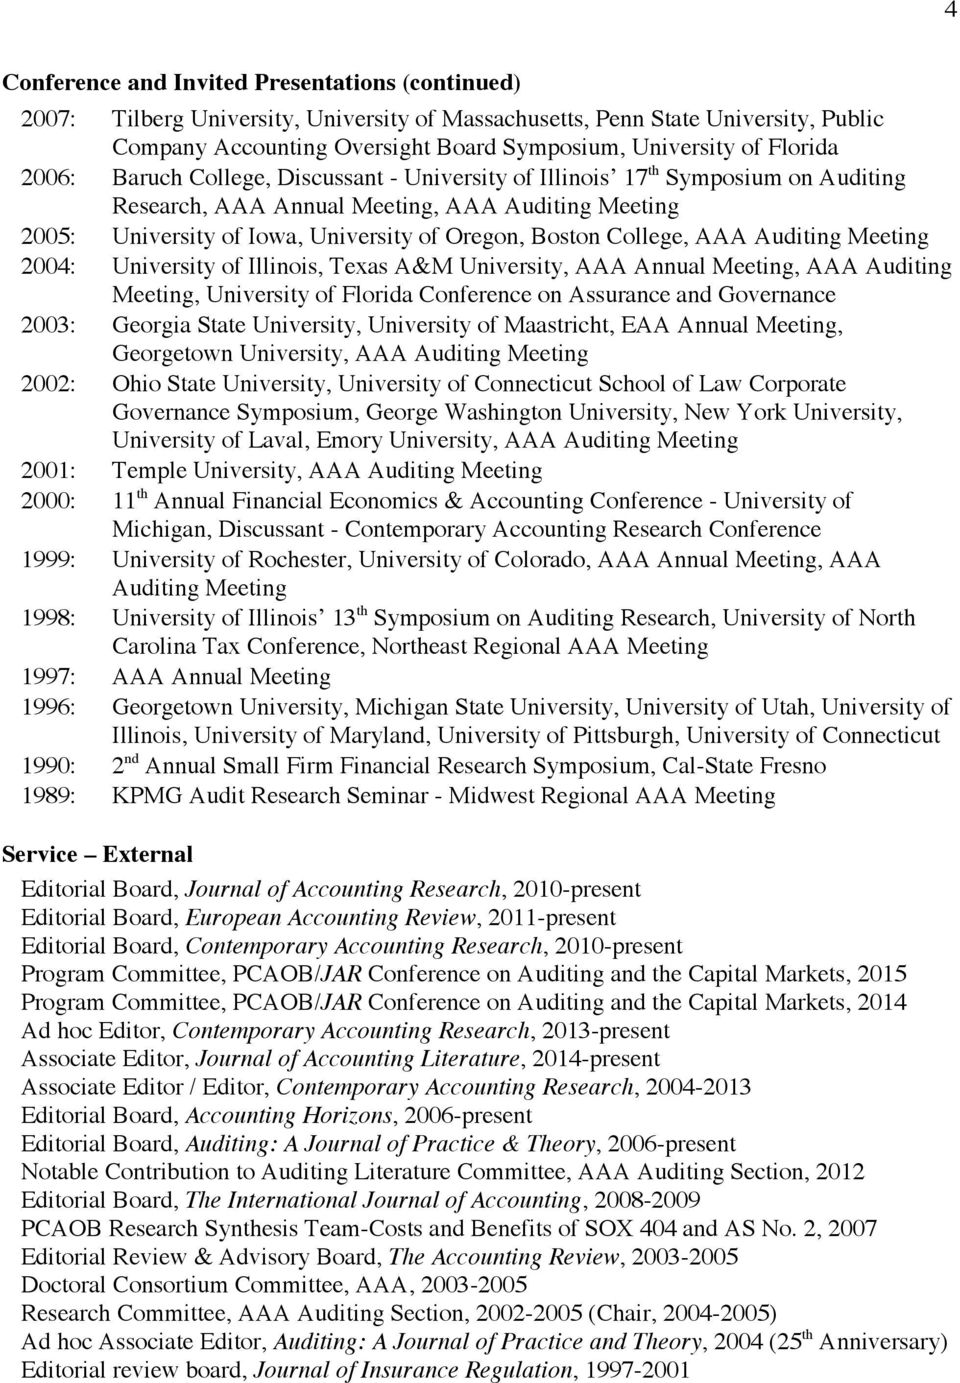 College, AAA Auditing Meeting 2004: University of Illinois, Texas A&M University, AAA Annual Meeting, AAA Auditing Meeting, University of Florida Conference on Assurance and Governance 2003: Georgia